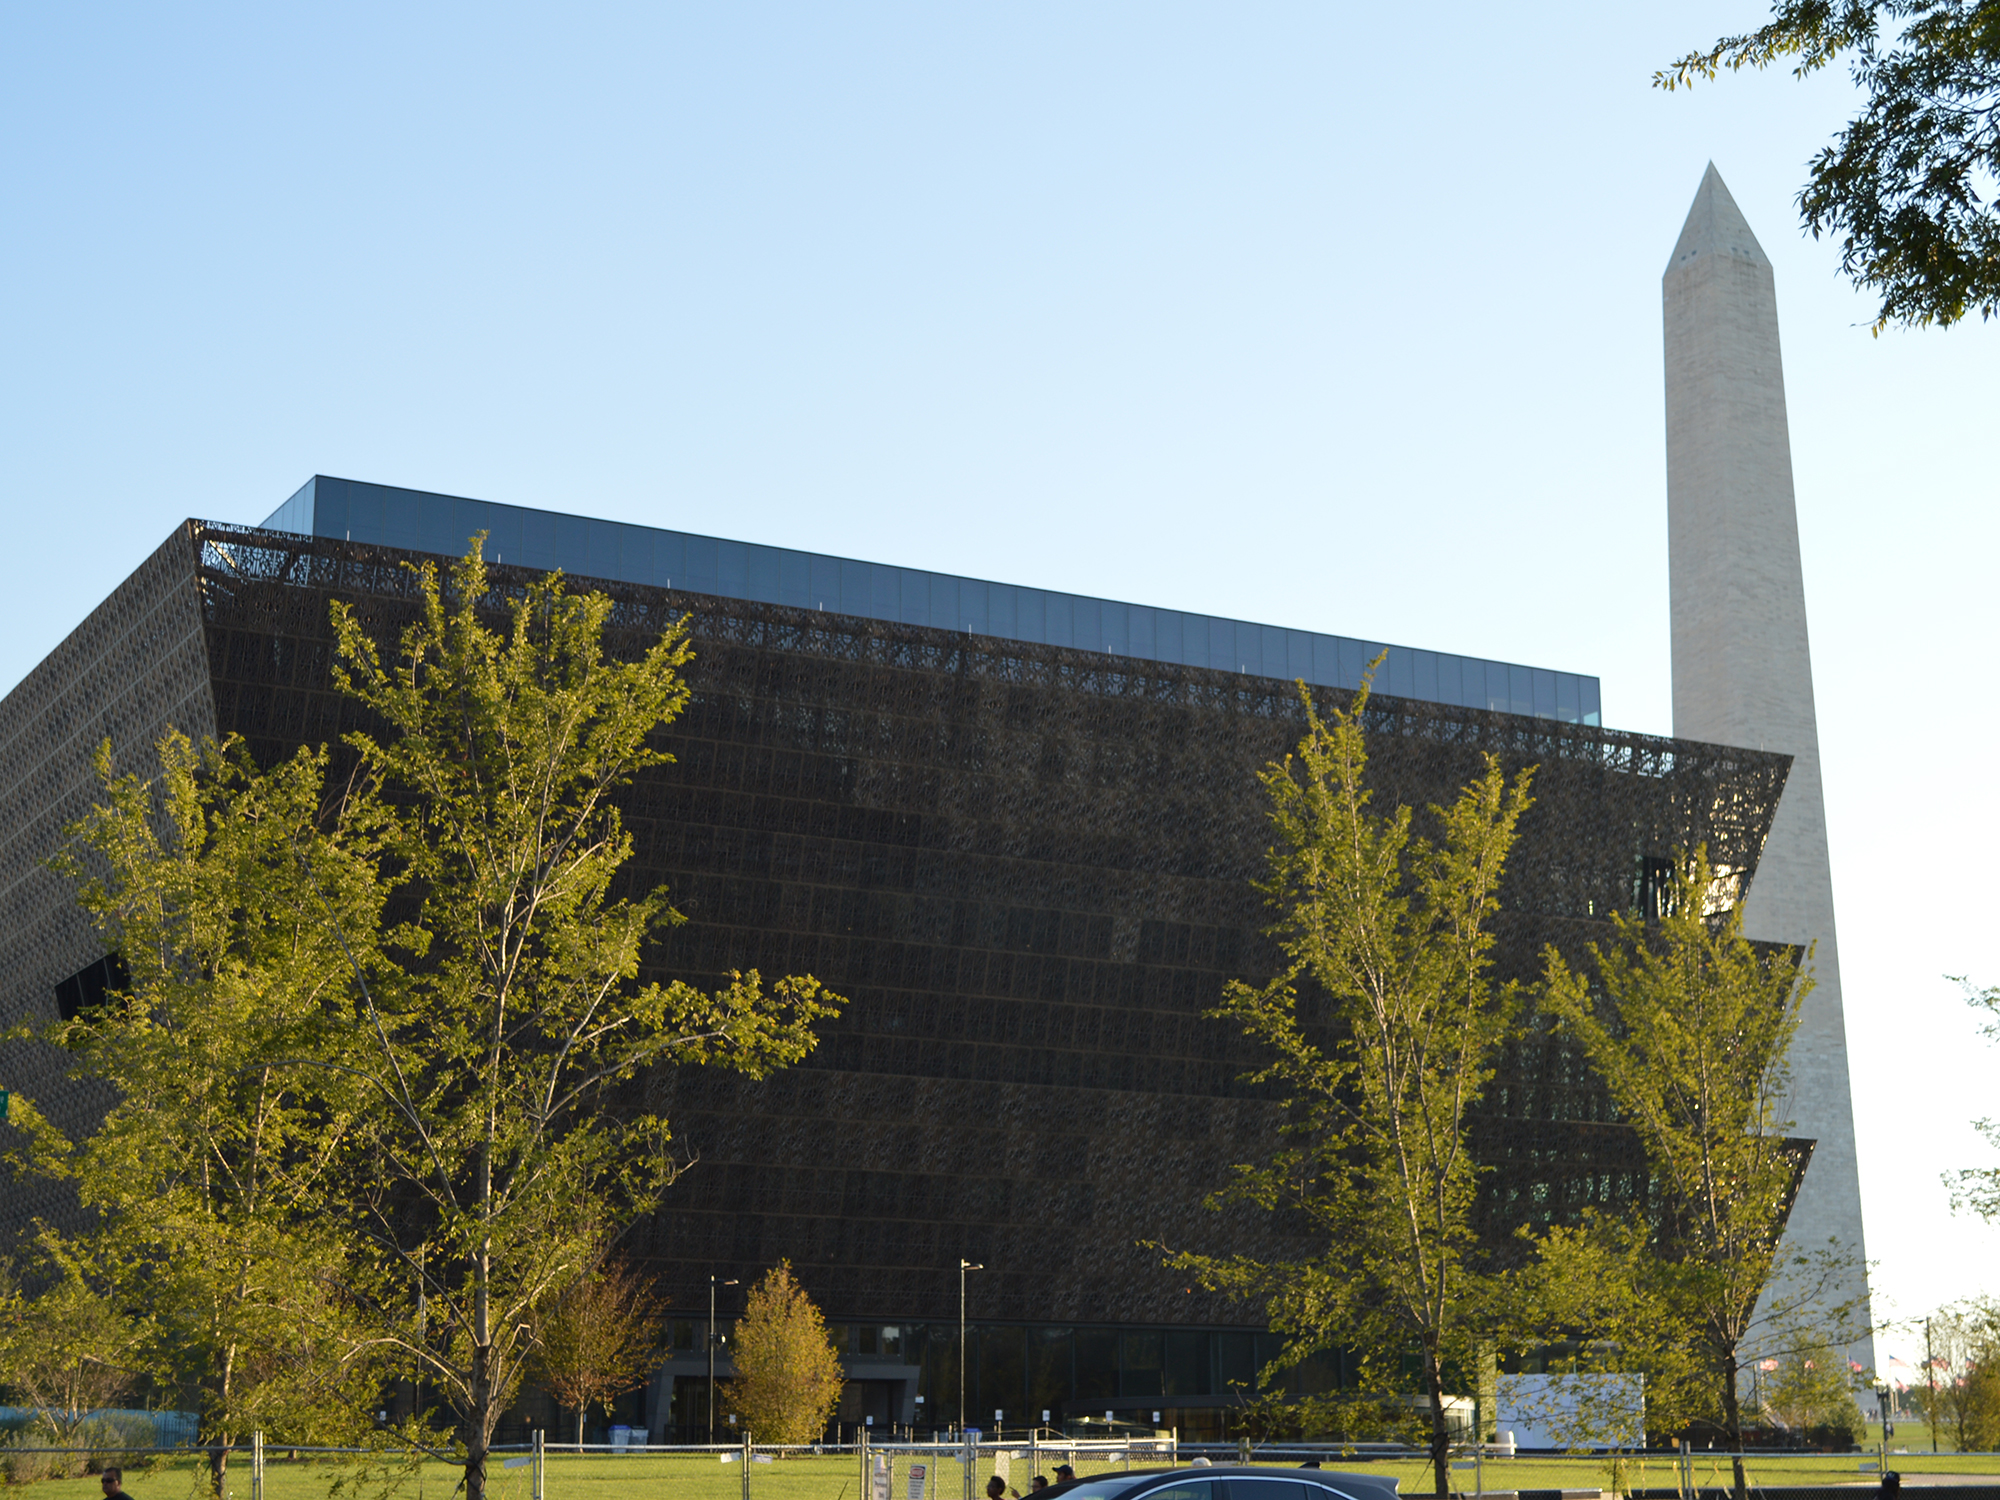 Watch Exactly How the National Museum of African American History and Culture Was Built in This Time-Lapse Video